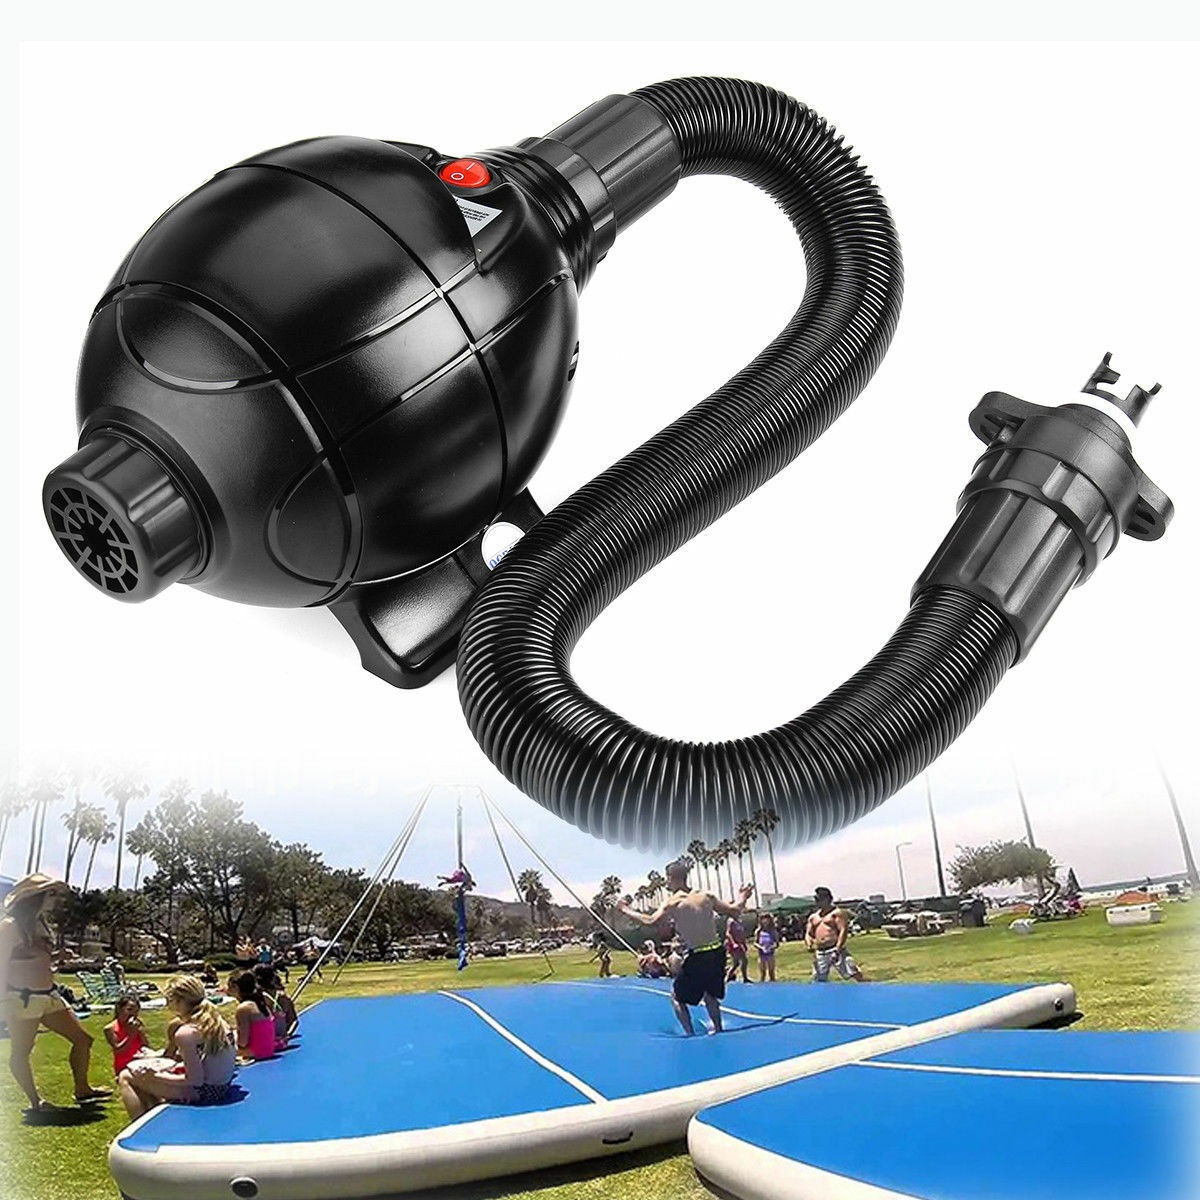 CE Inflatable and Inhale Air Compressor Compressor Compressor Pump For Inflatable Zorb Ball Toys 1009e8